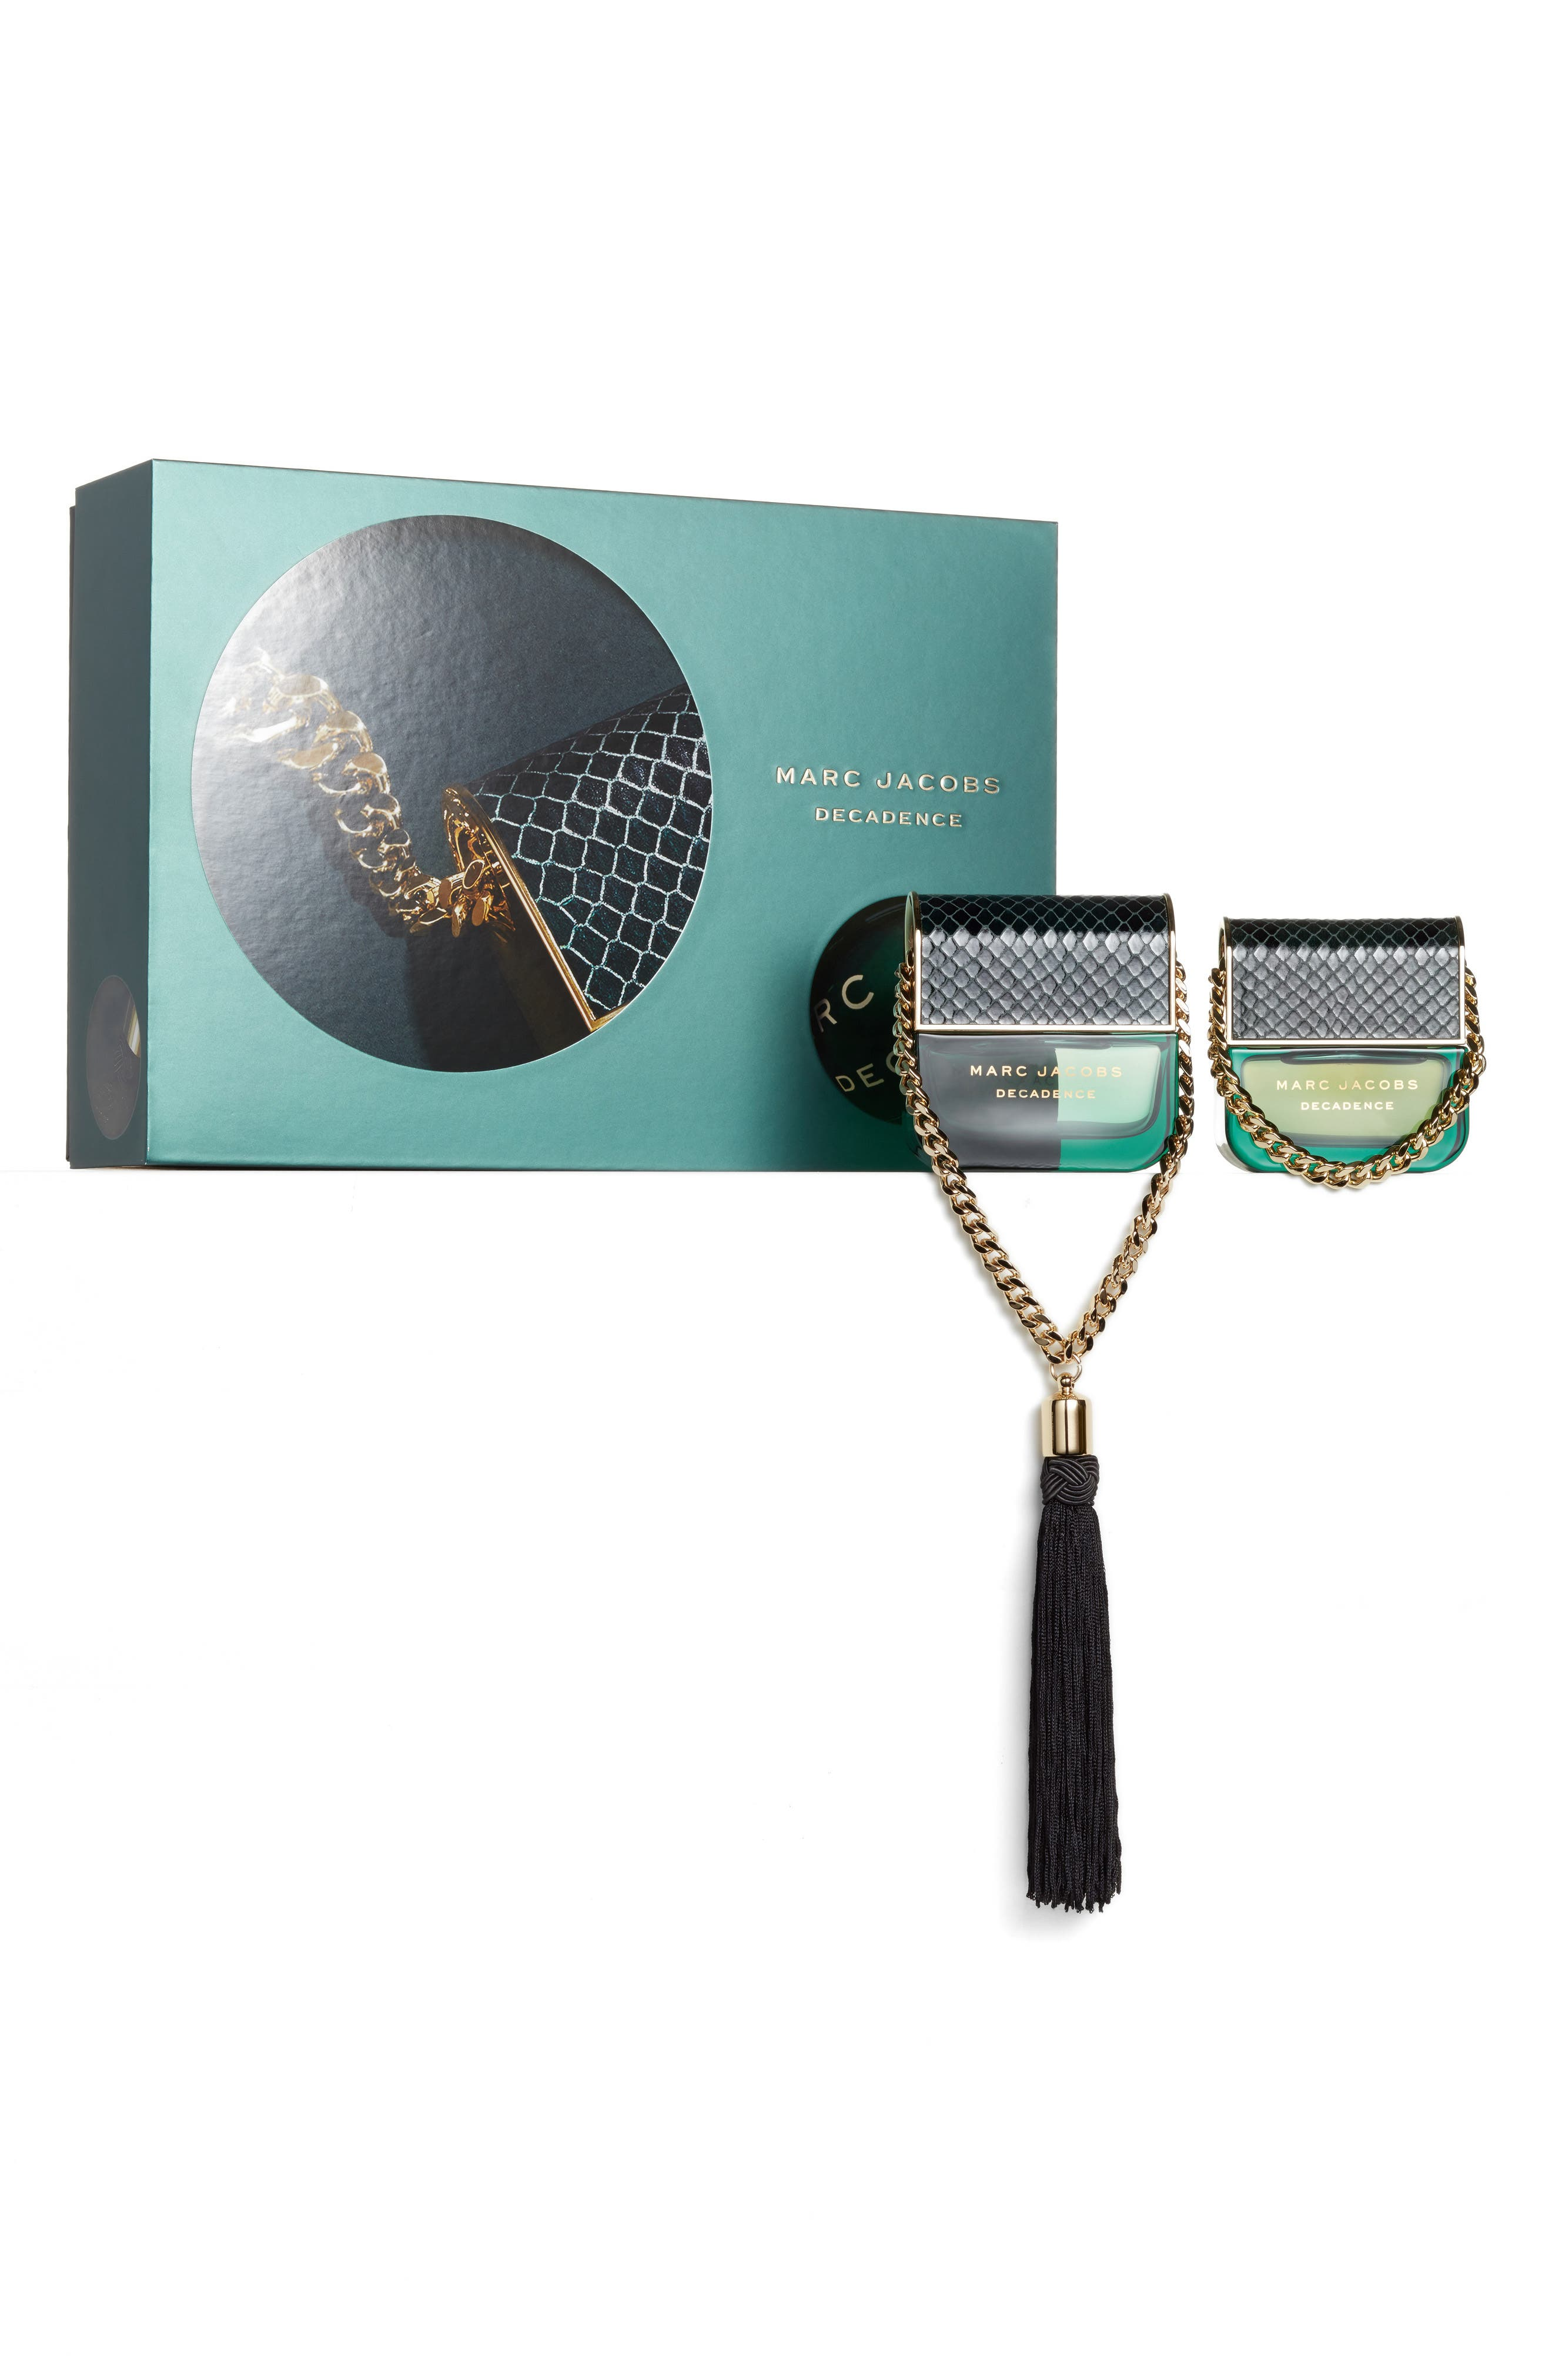 MARC JACOBS Decadence Set ($170 Value)